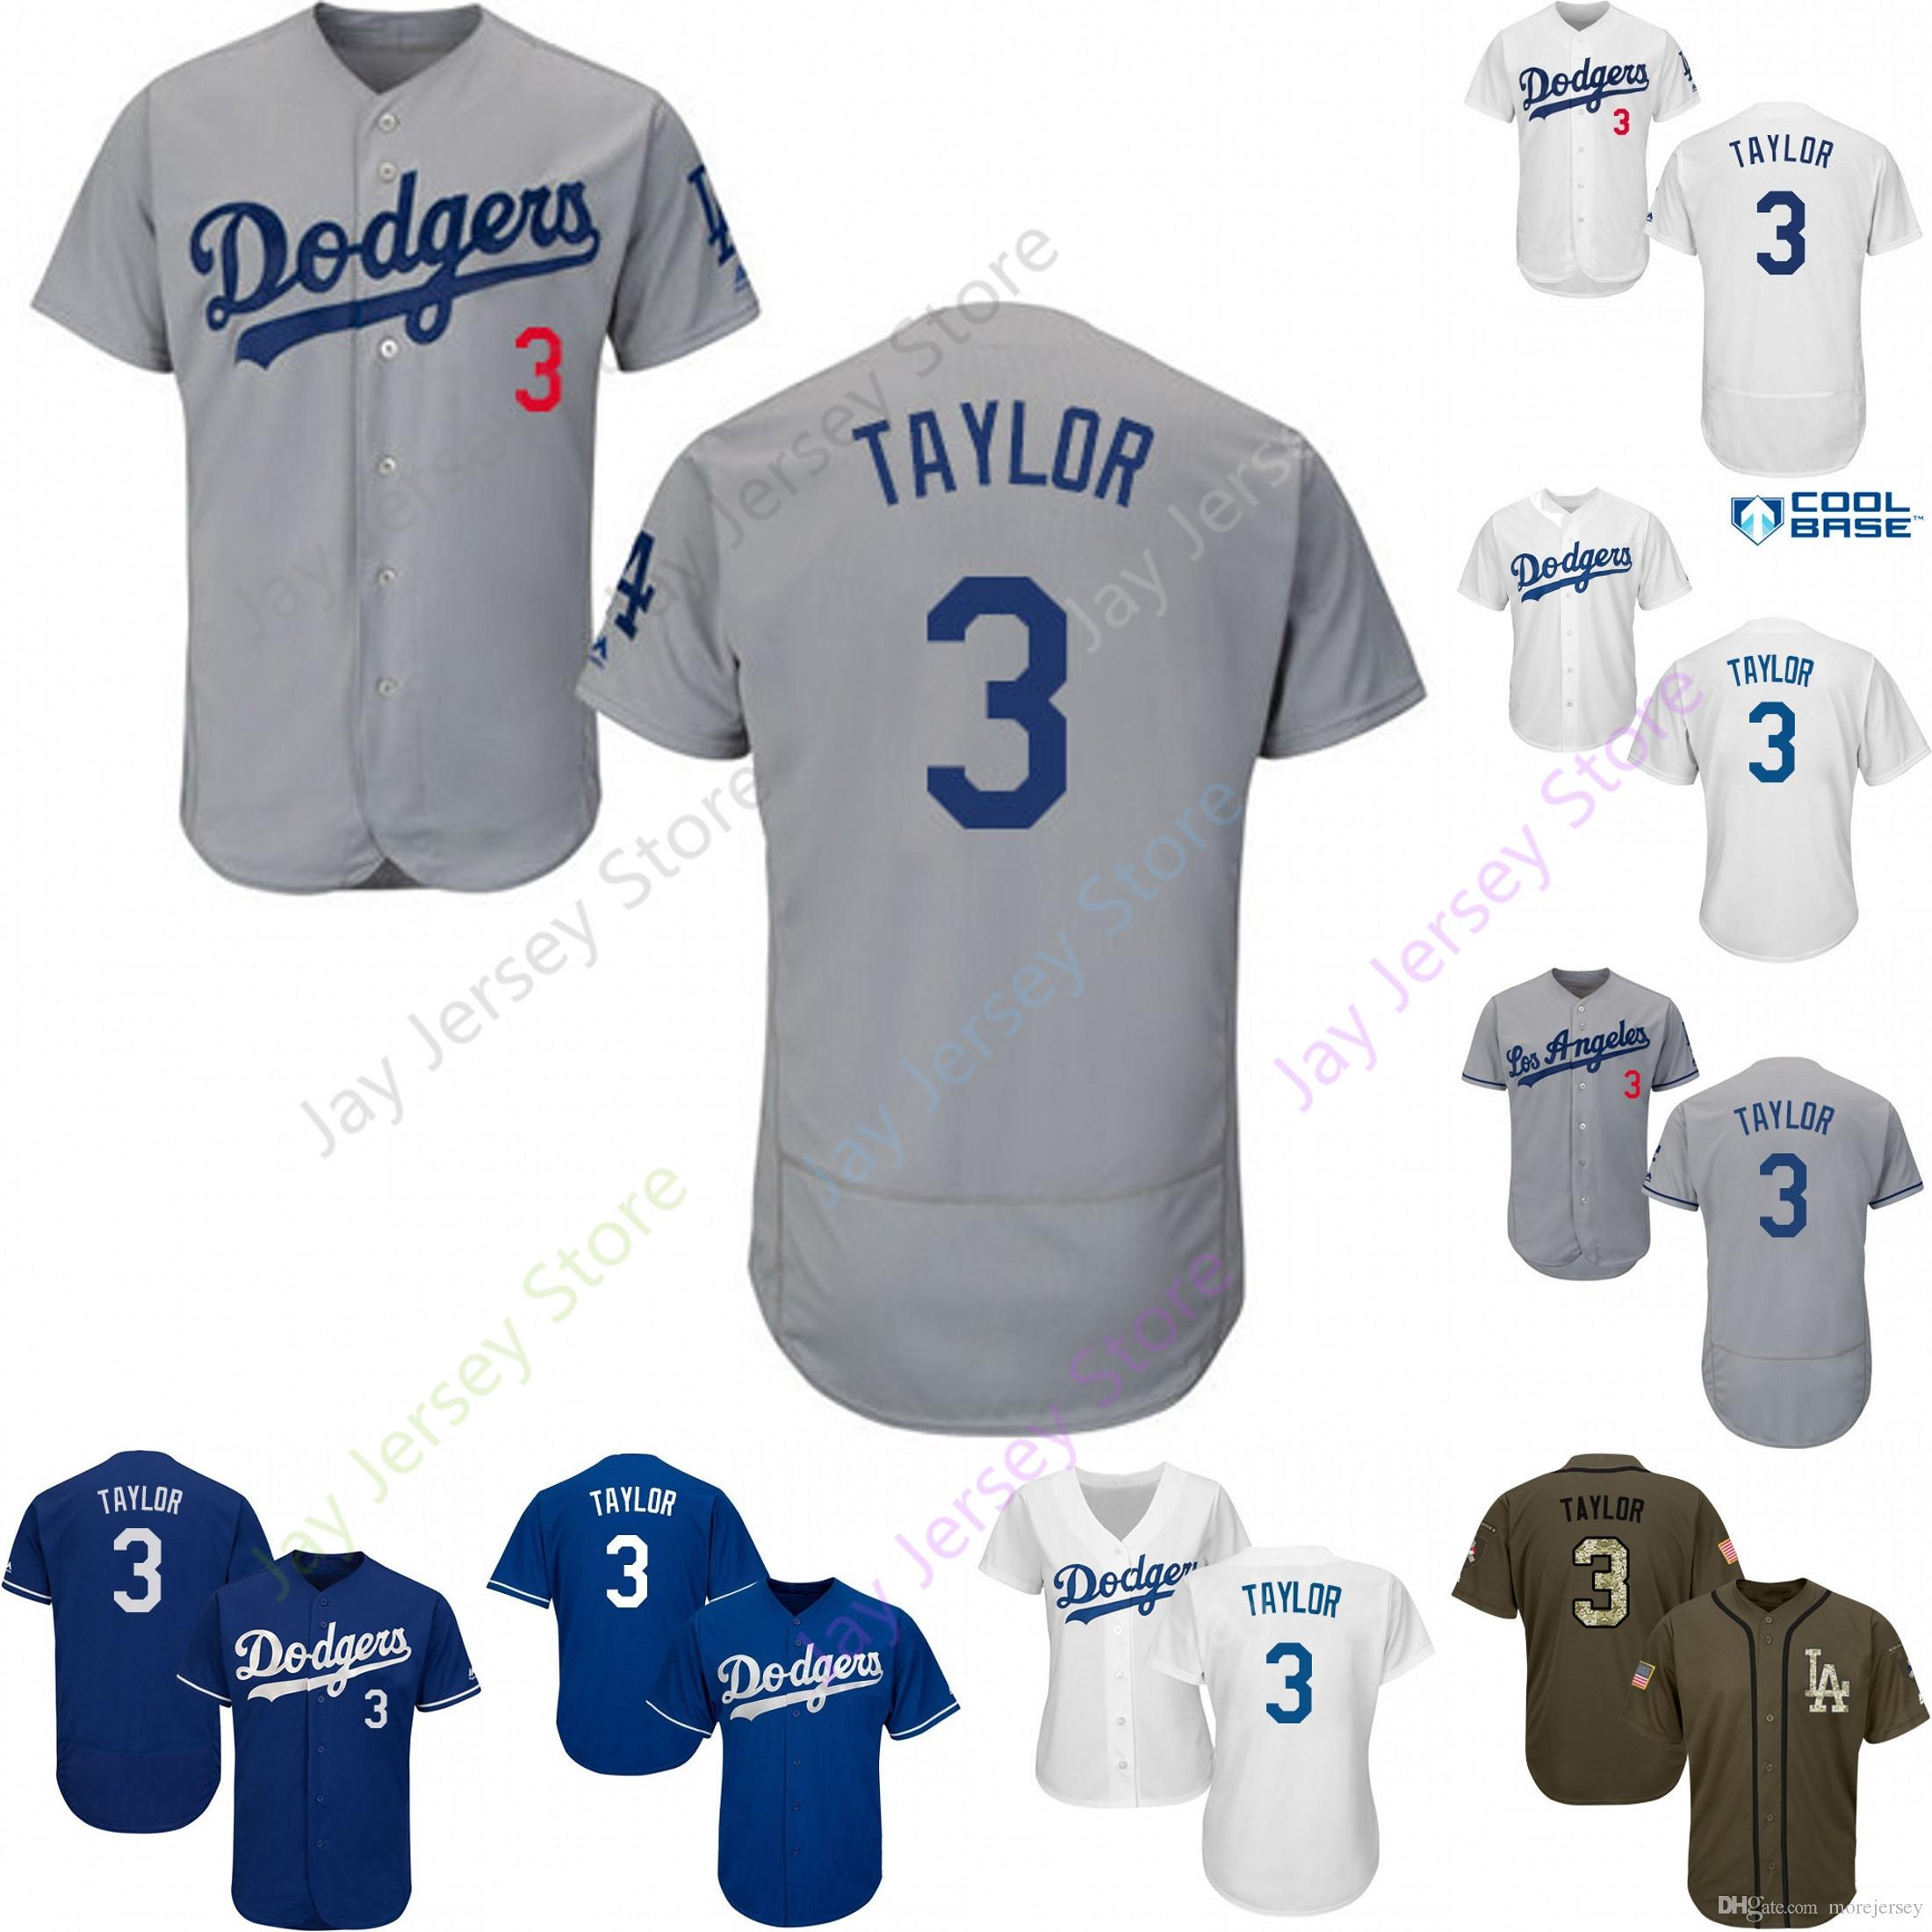 sale retailer 796eb 7fb46 2019 Los Angeles 3 Chris Taylor Jersey Dodgers Jerseys Cool Base Flexbase  Home Away White Black Red Grey Pullover Button Men Women Youth